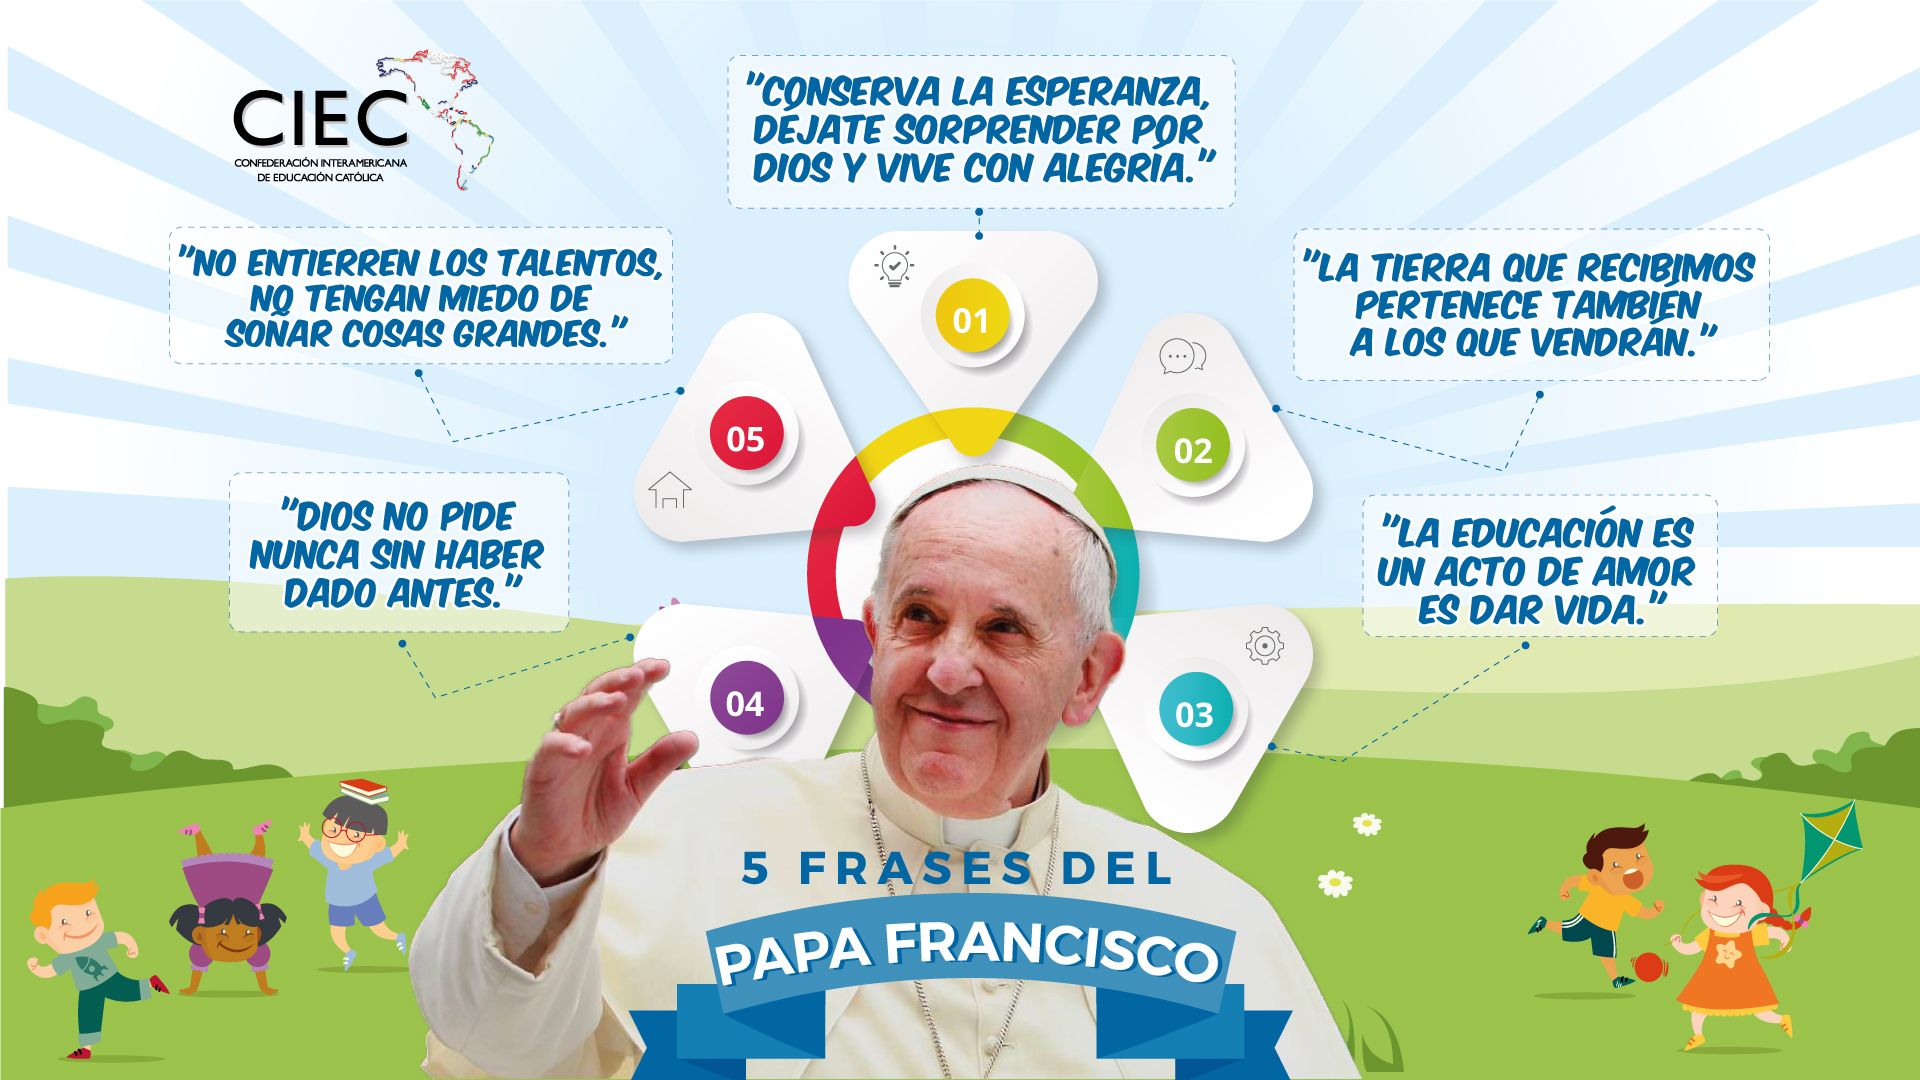 41 Cinco Frases Del Papa Francisco Ciec